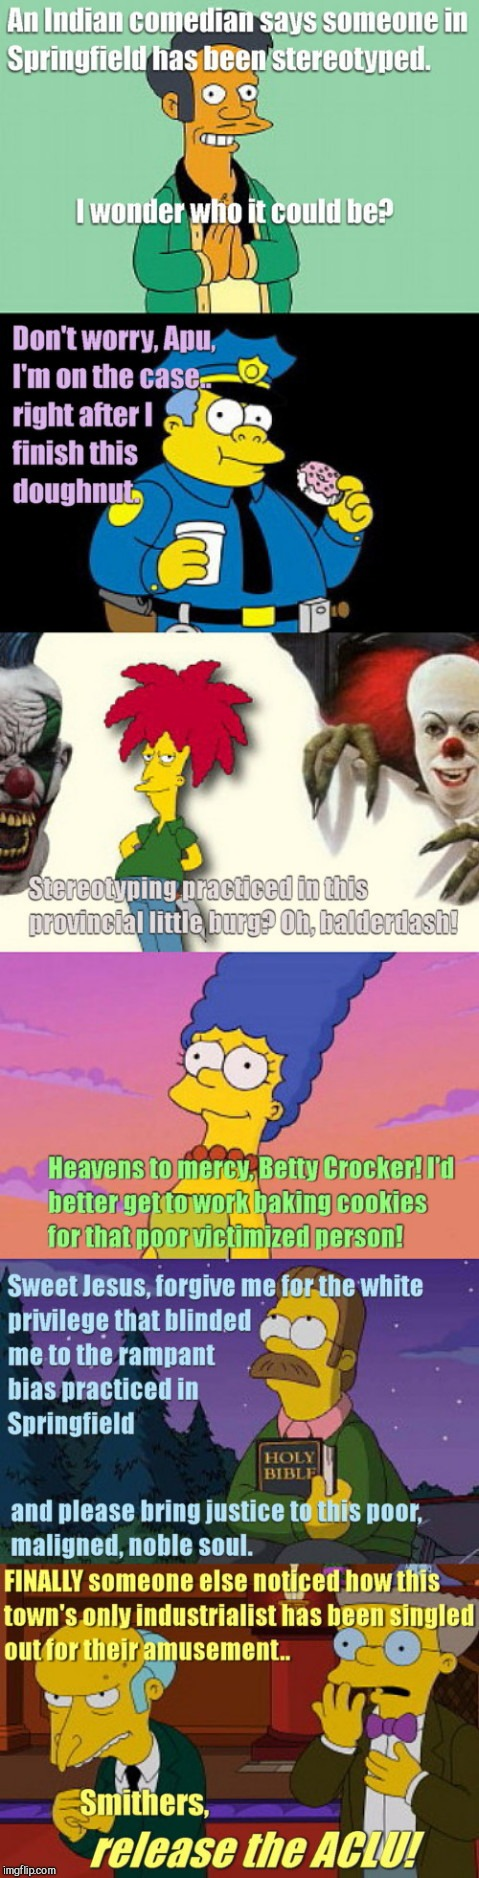 image tagged in springfield's elephant in the room,apu controversy,the simpsons,funny | made w/ Imgflip meme maker